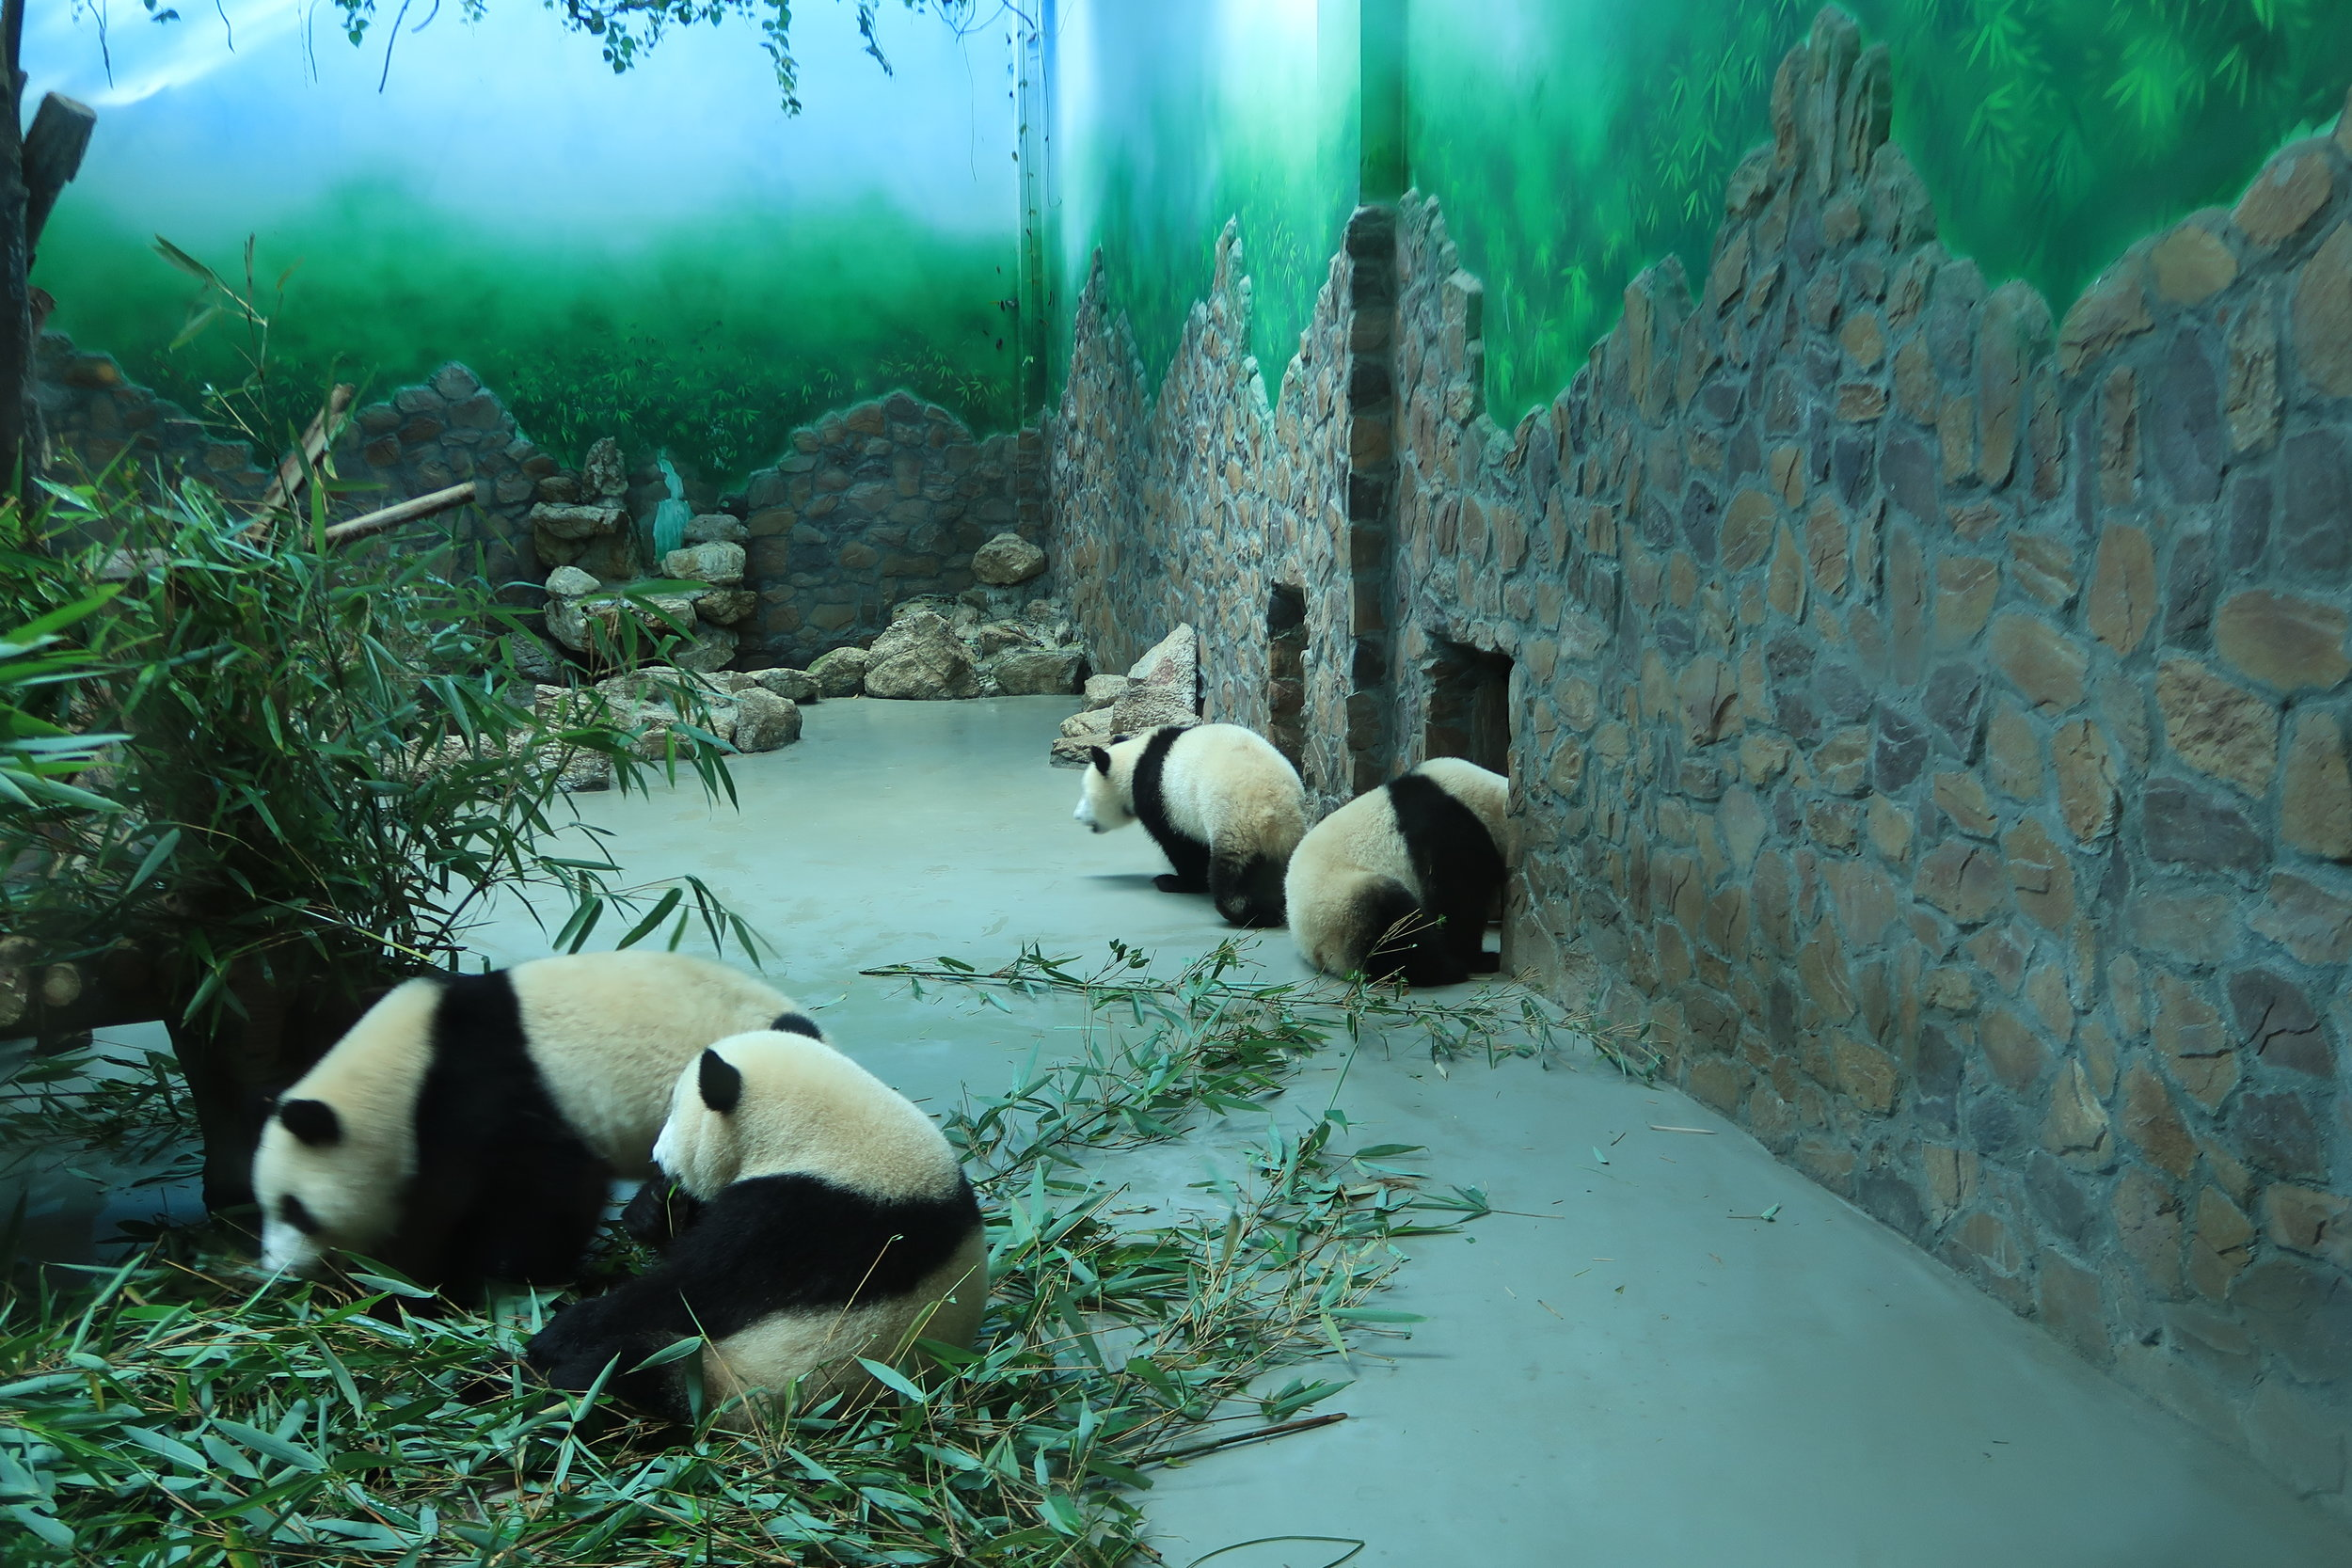 There were so many cute pandas and we have hundreds of pictures... so hard to choose just a few.